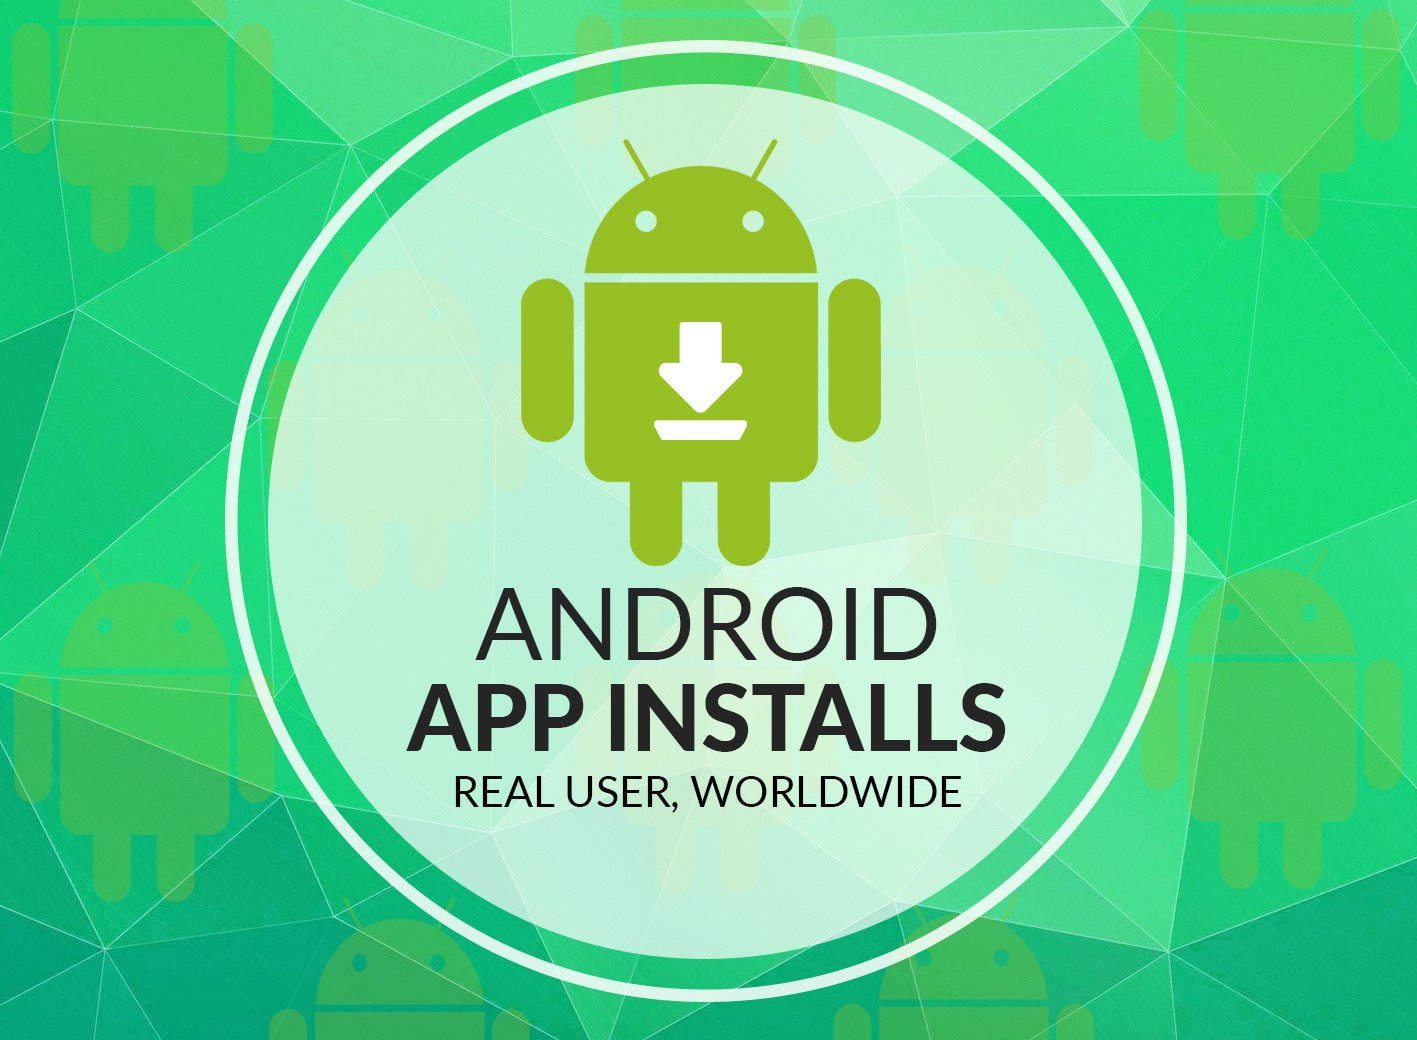 create 30 REAL Android Installs